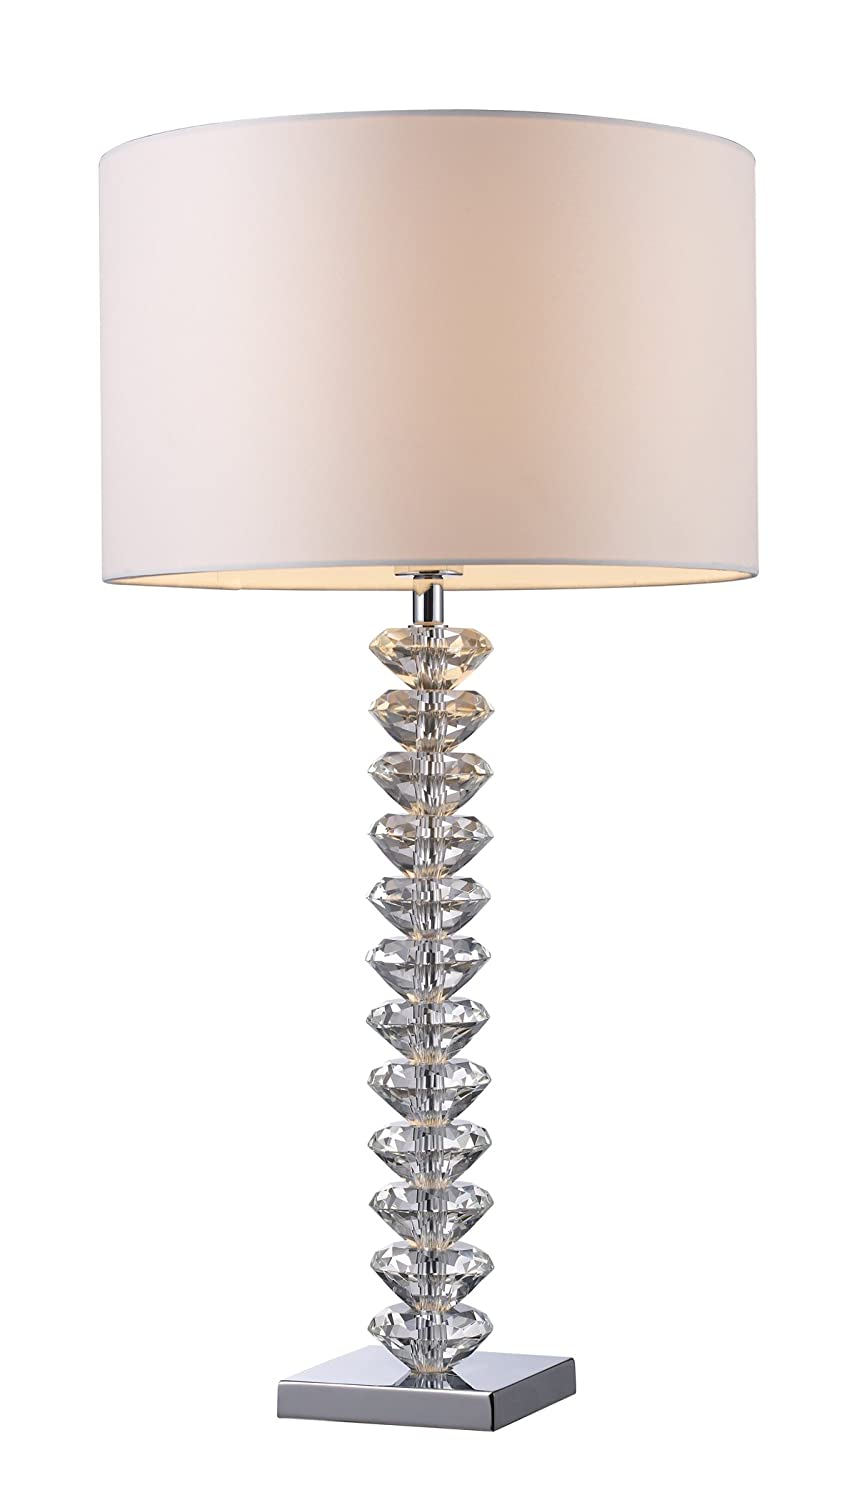 Dimond d1483 modena table lamp crystal and chrome amazon aloadofball Image collections